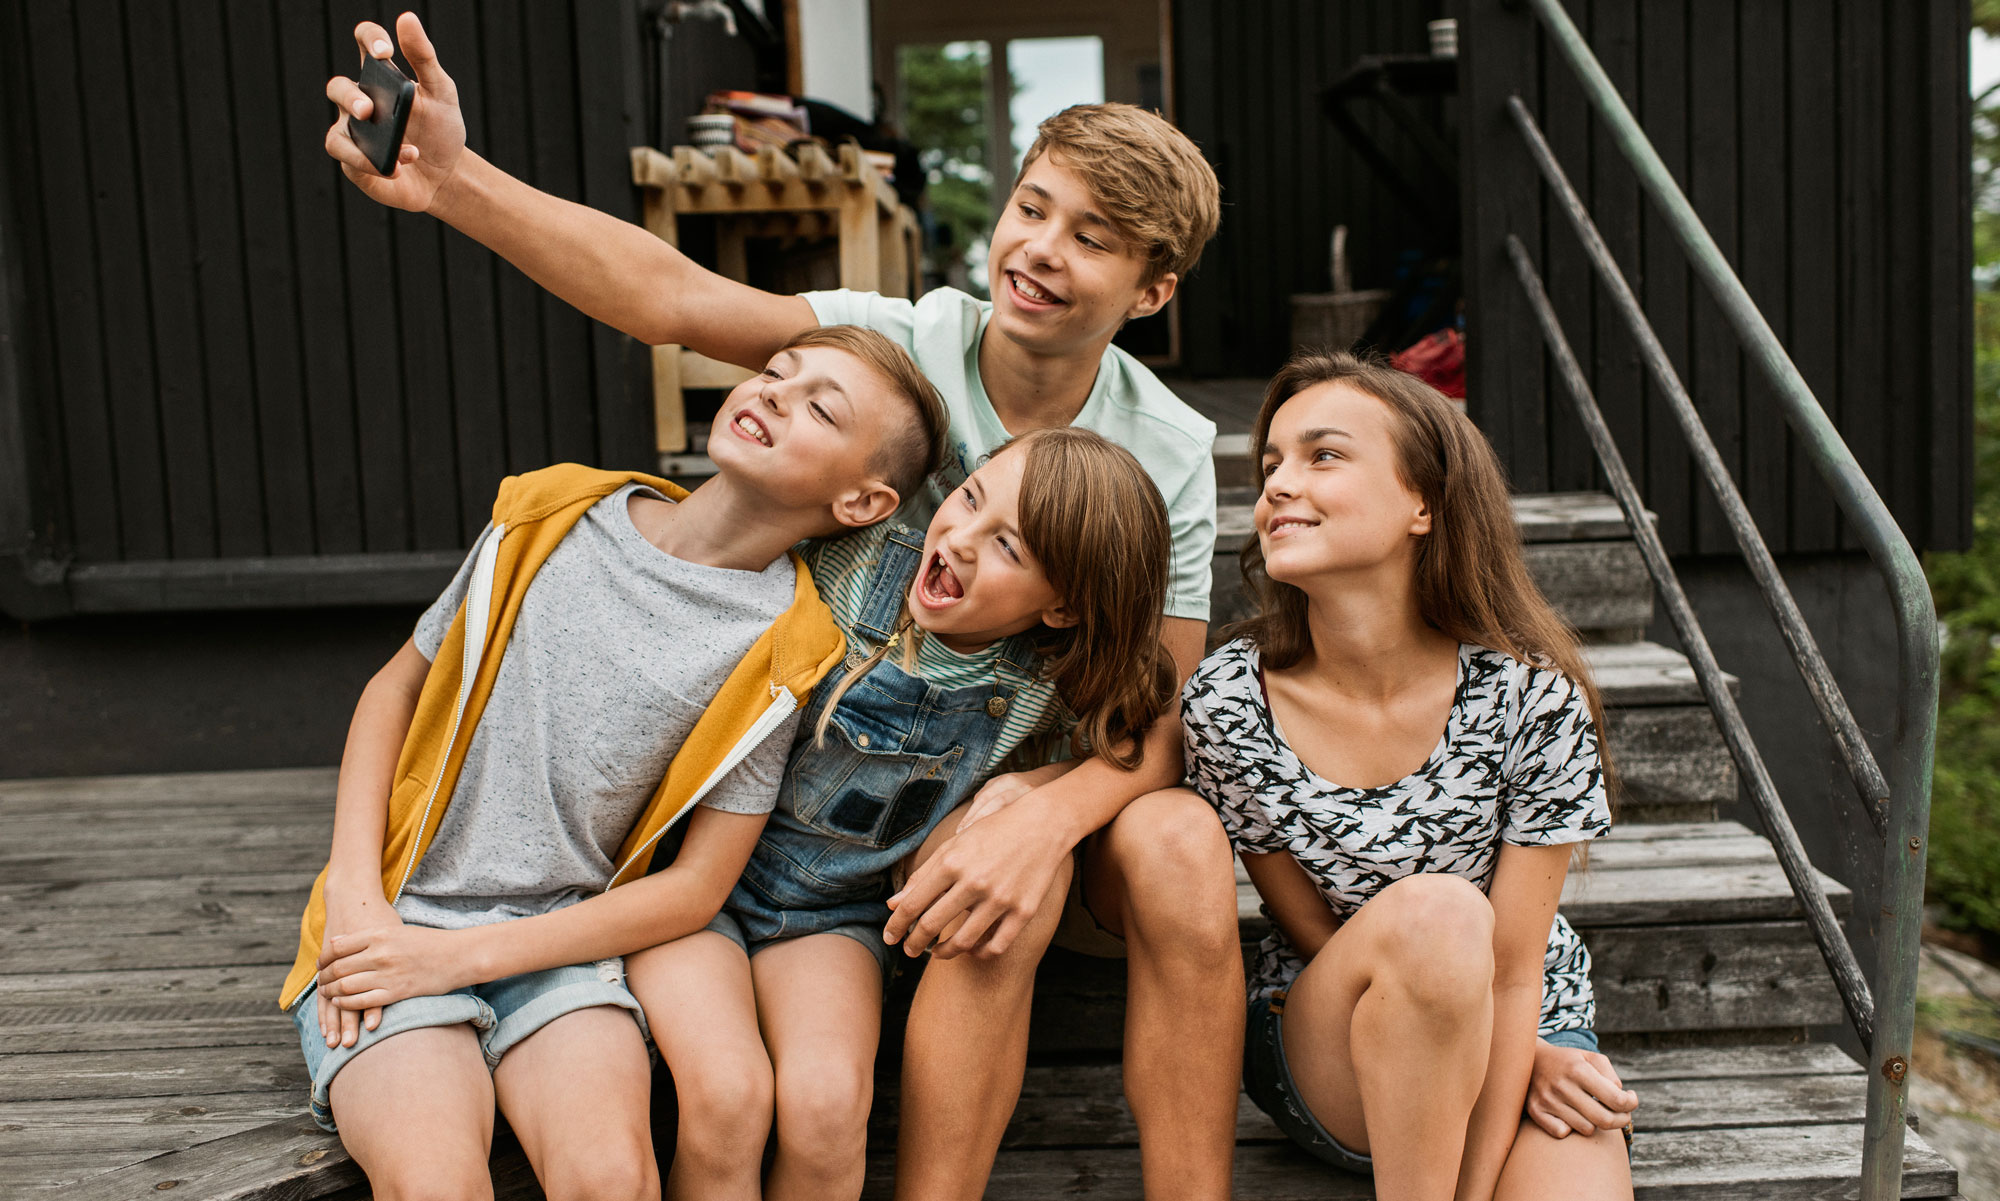 Kids taking group selfie on terrace